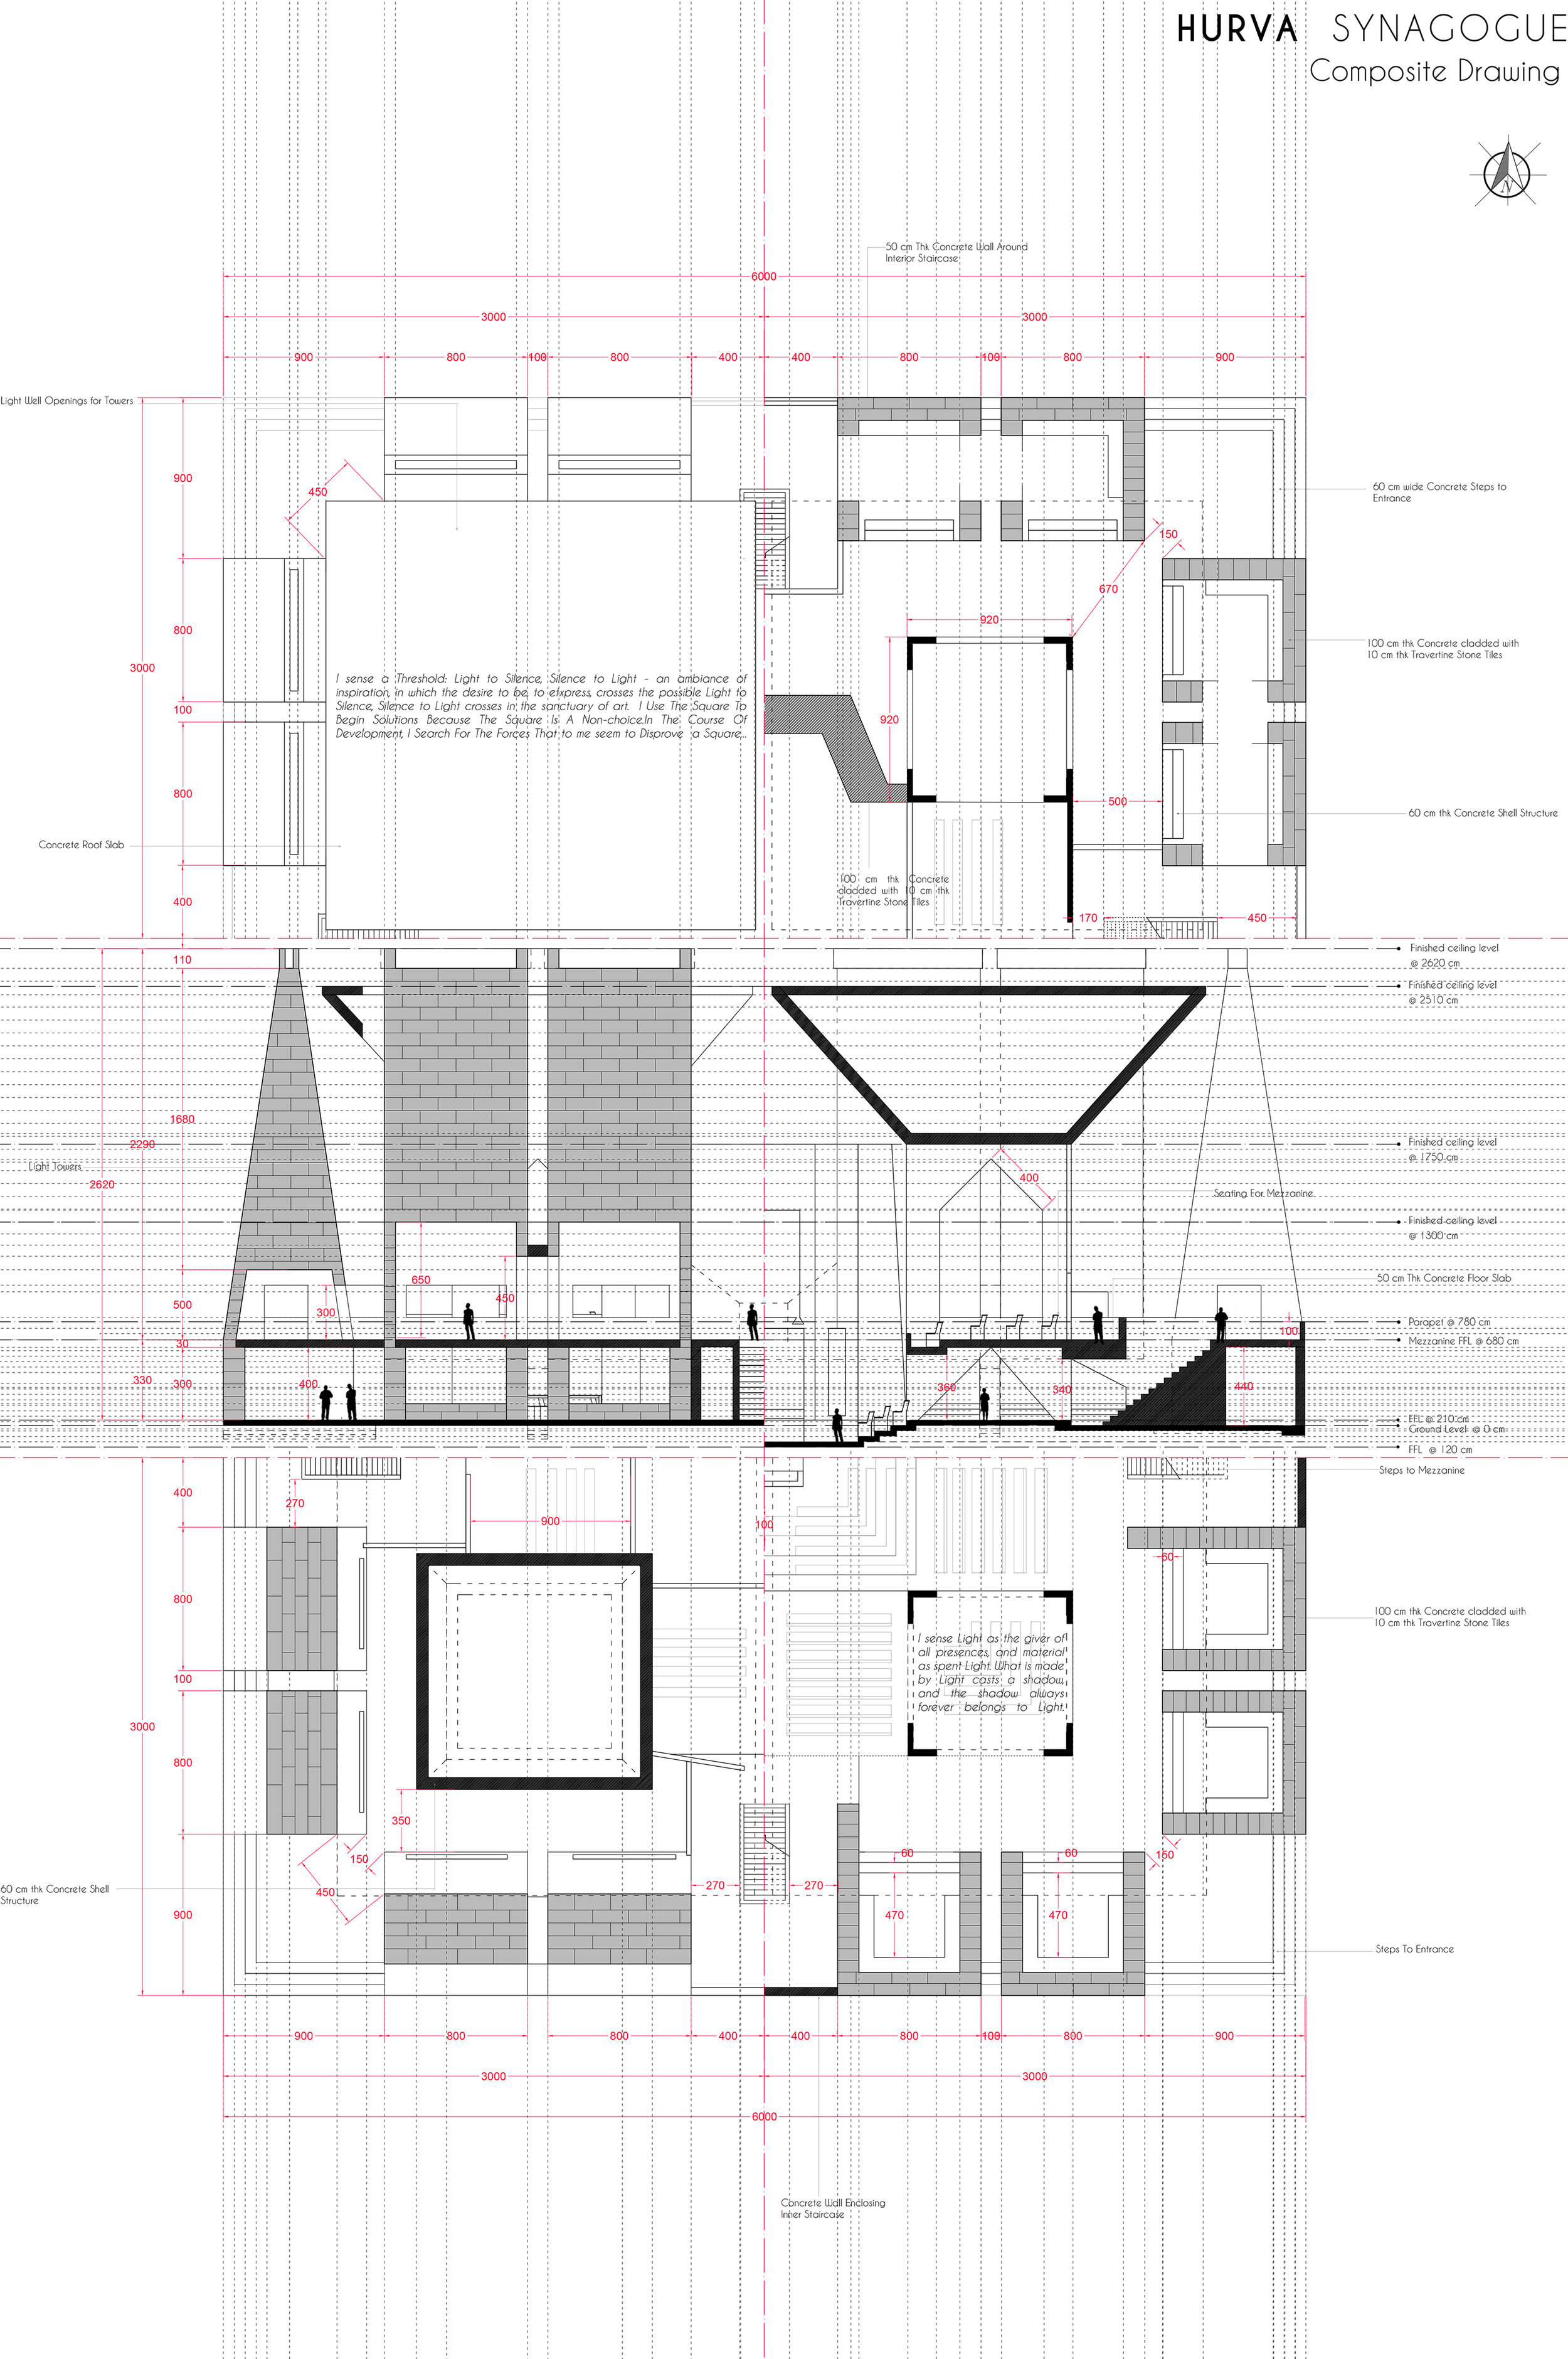 Composite detailed construction drawing.